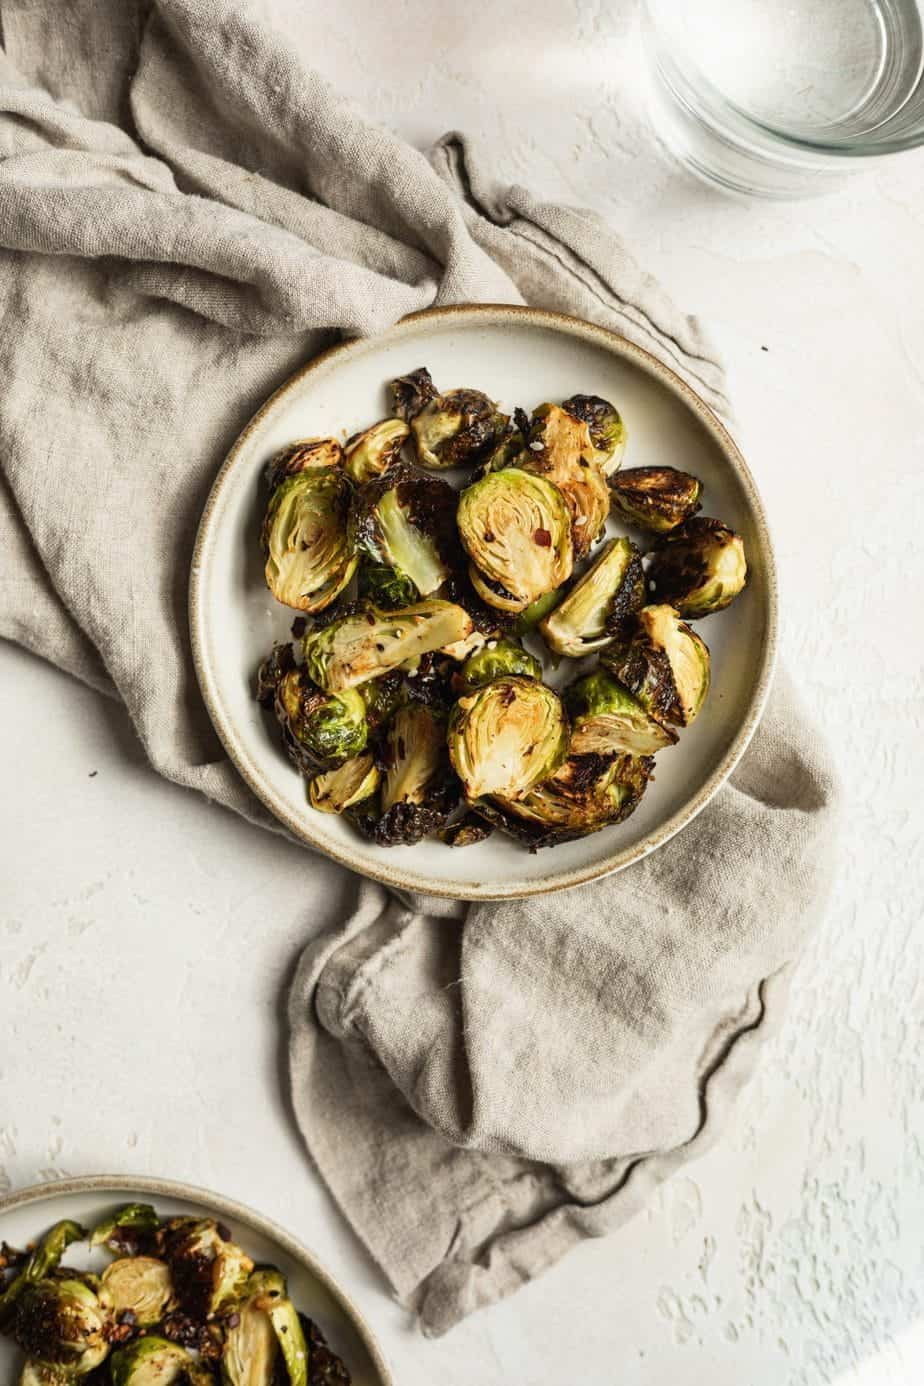 plate of air fryer brussels sprouts keto with a beige linen napkin